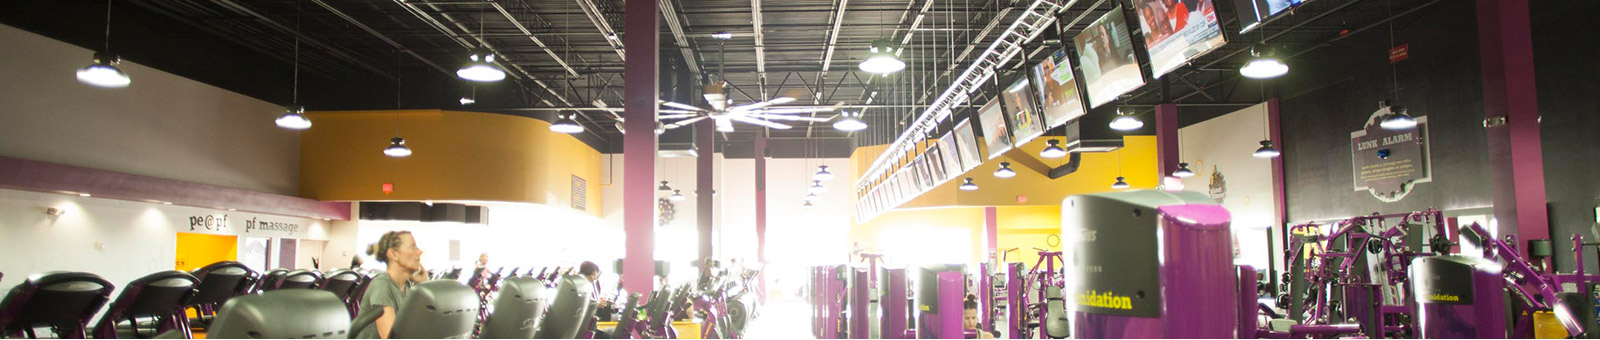 Gym In Pomona Ca 2057 Rancho Valley D Planet Fitness